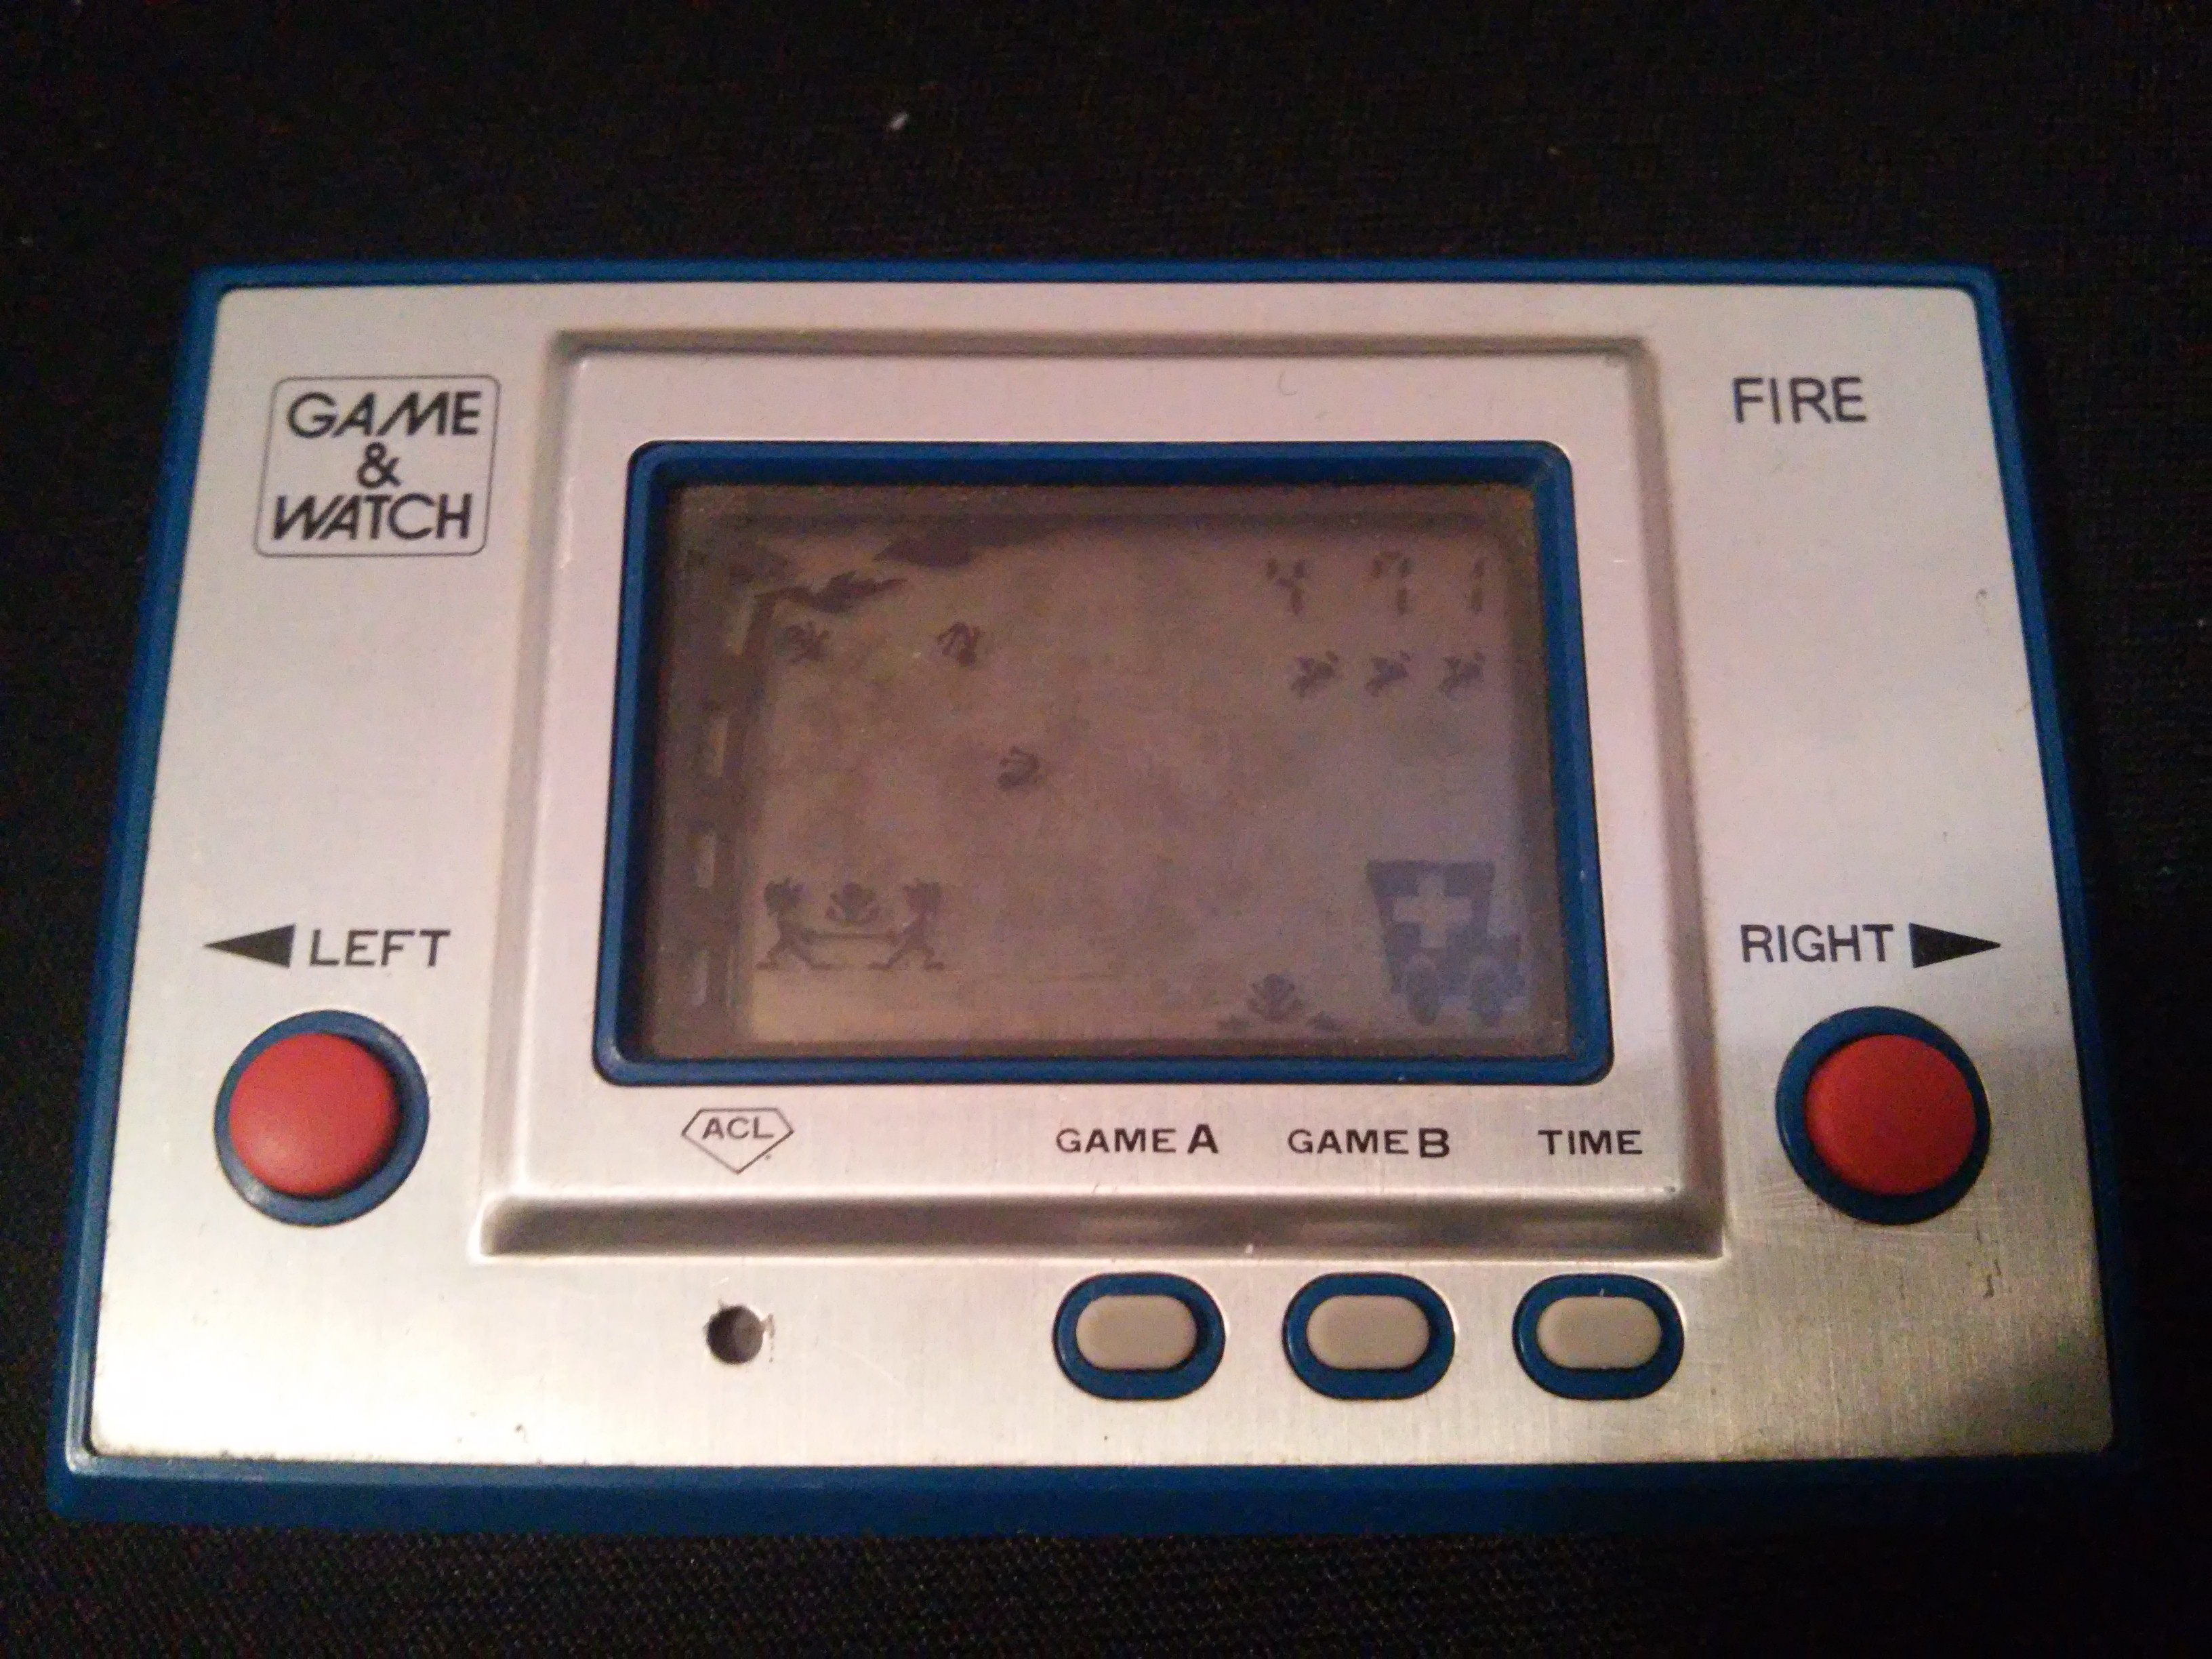 zerooskul: Game & Watch: Fire [aka Fireman Fireman] [Game A] (Dedicated Handheld) 471 points on 2019-01-05 13:14:01